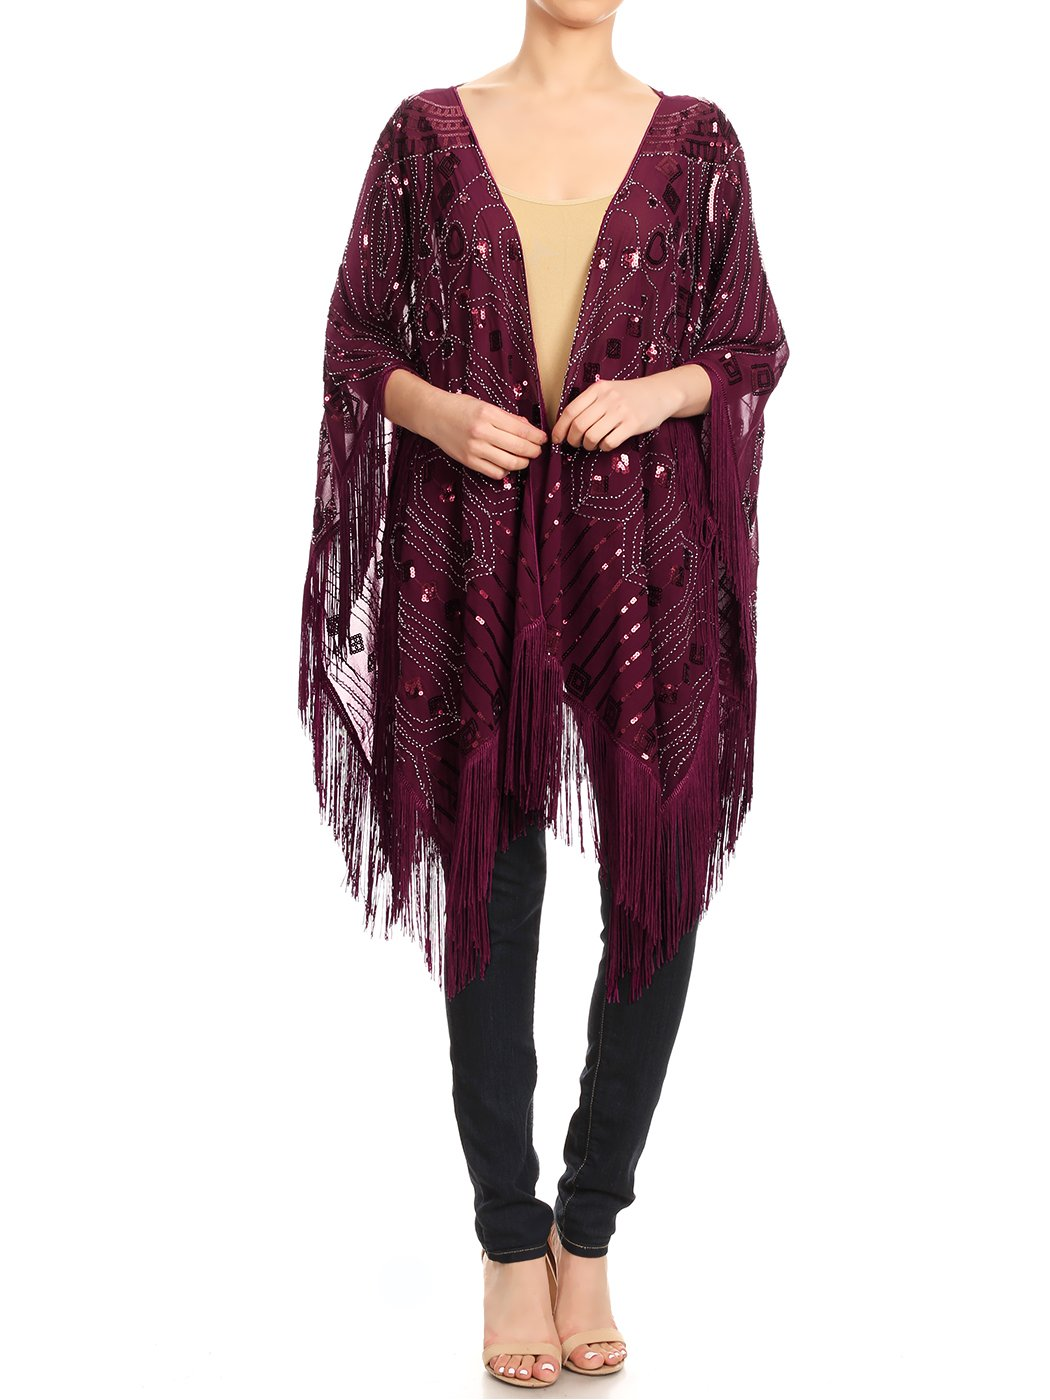 Anna-Kaci Womens Oversized Hand Beaded and Sequin Evening Shawl Wrap with Fringe, Burgundy, Onesize